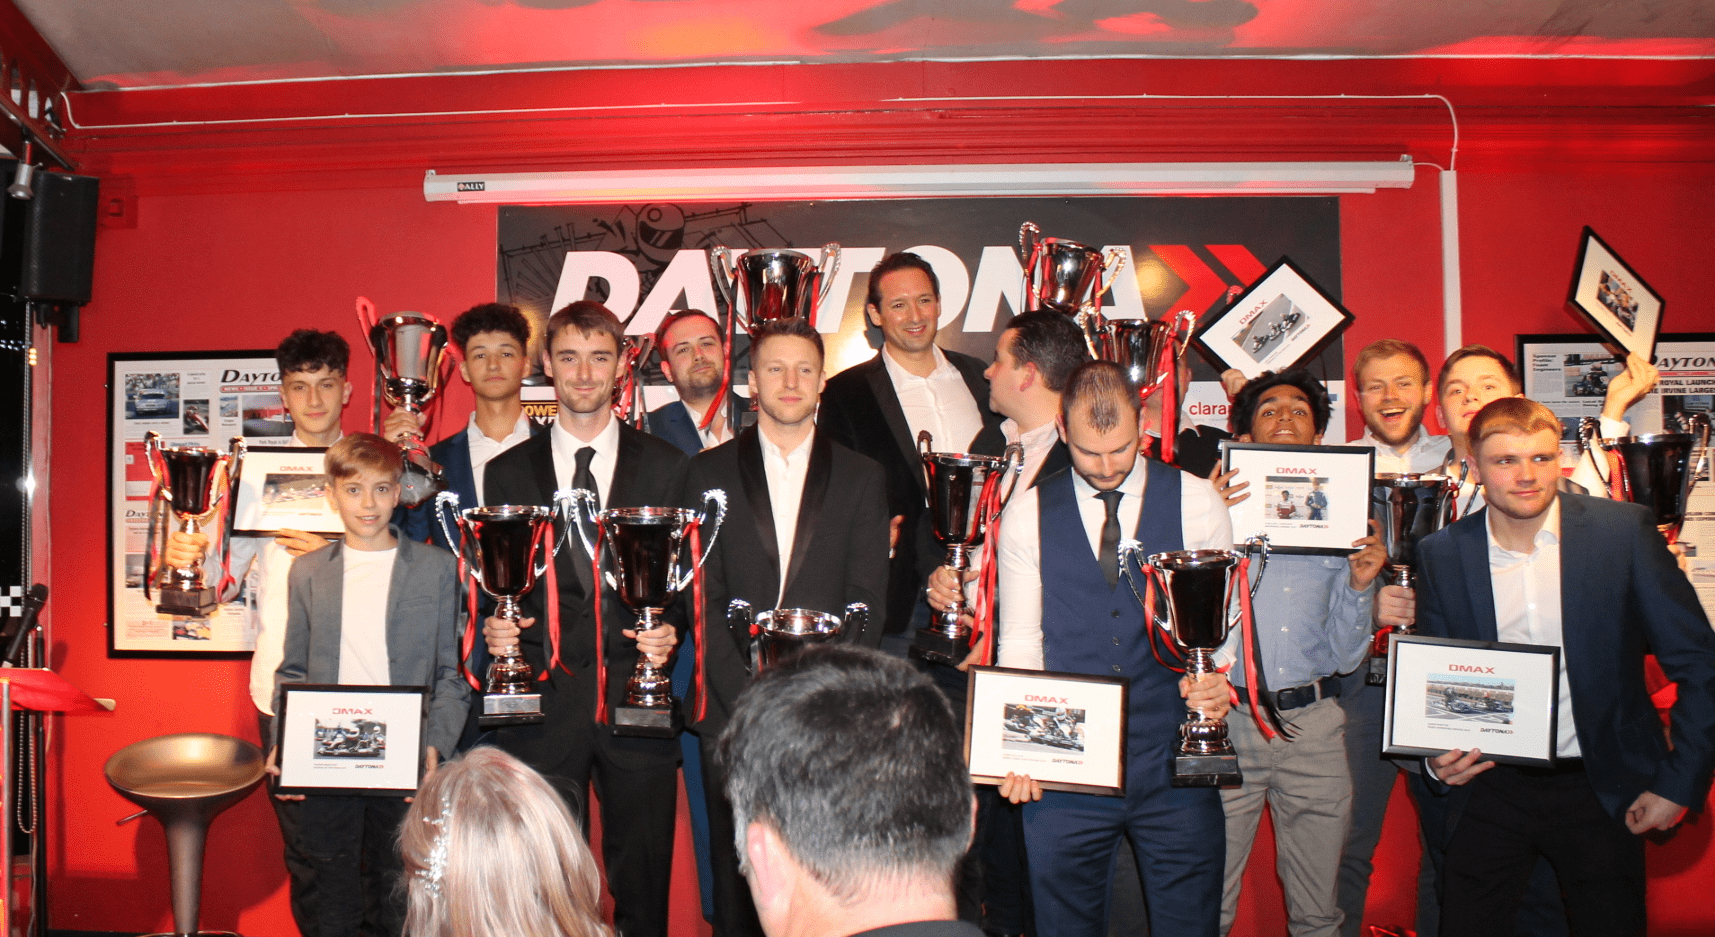 DAYTONA MK HOSTS DMAX AWARDS NIGHT